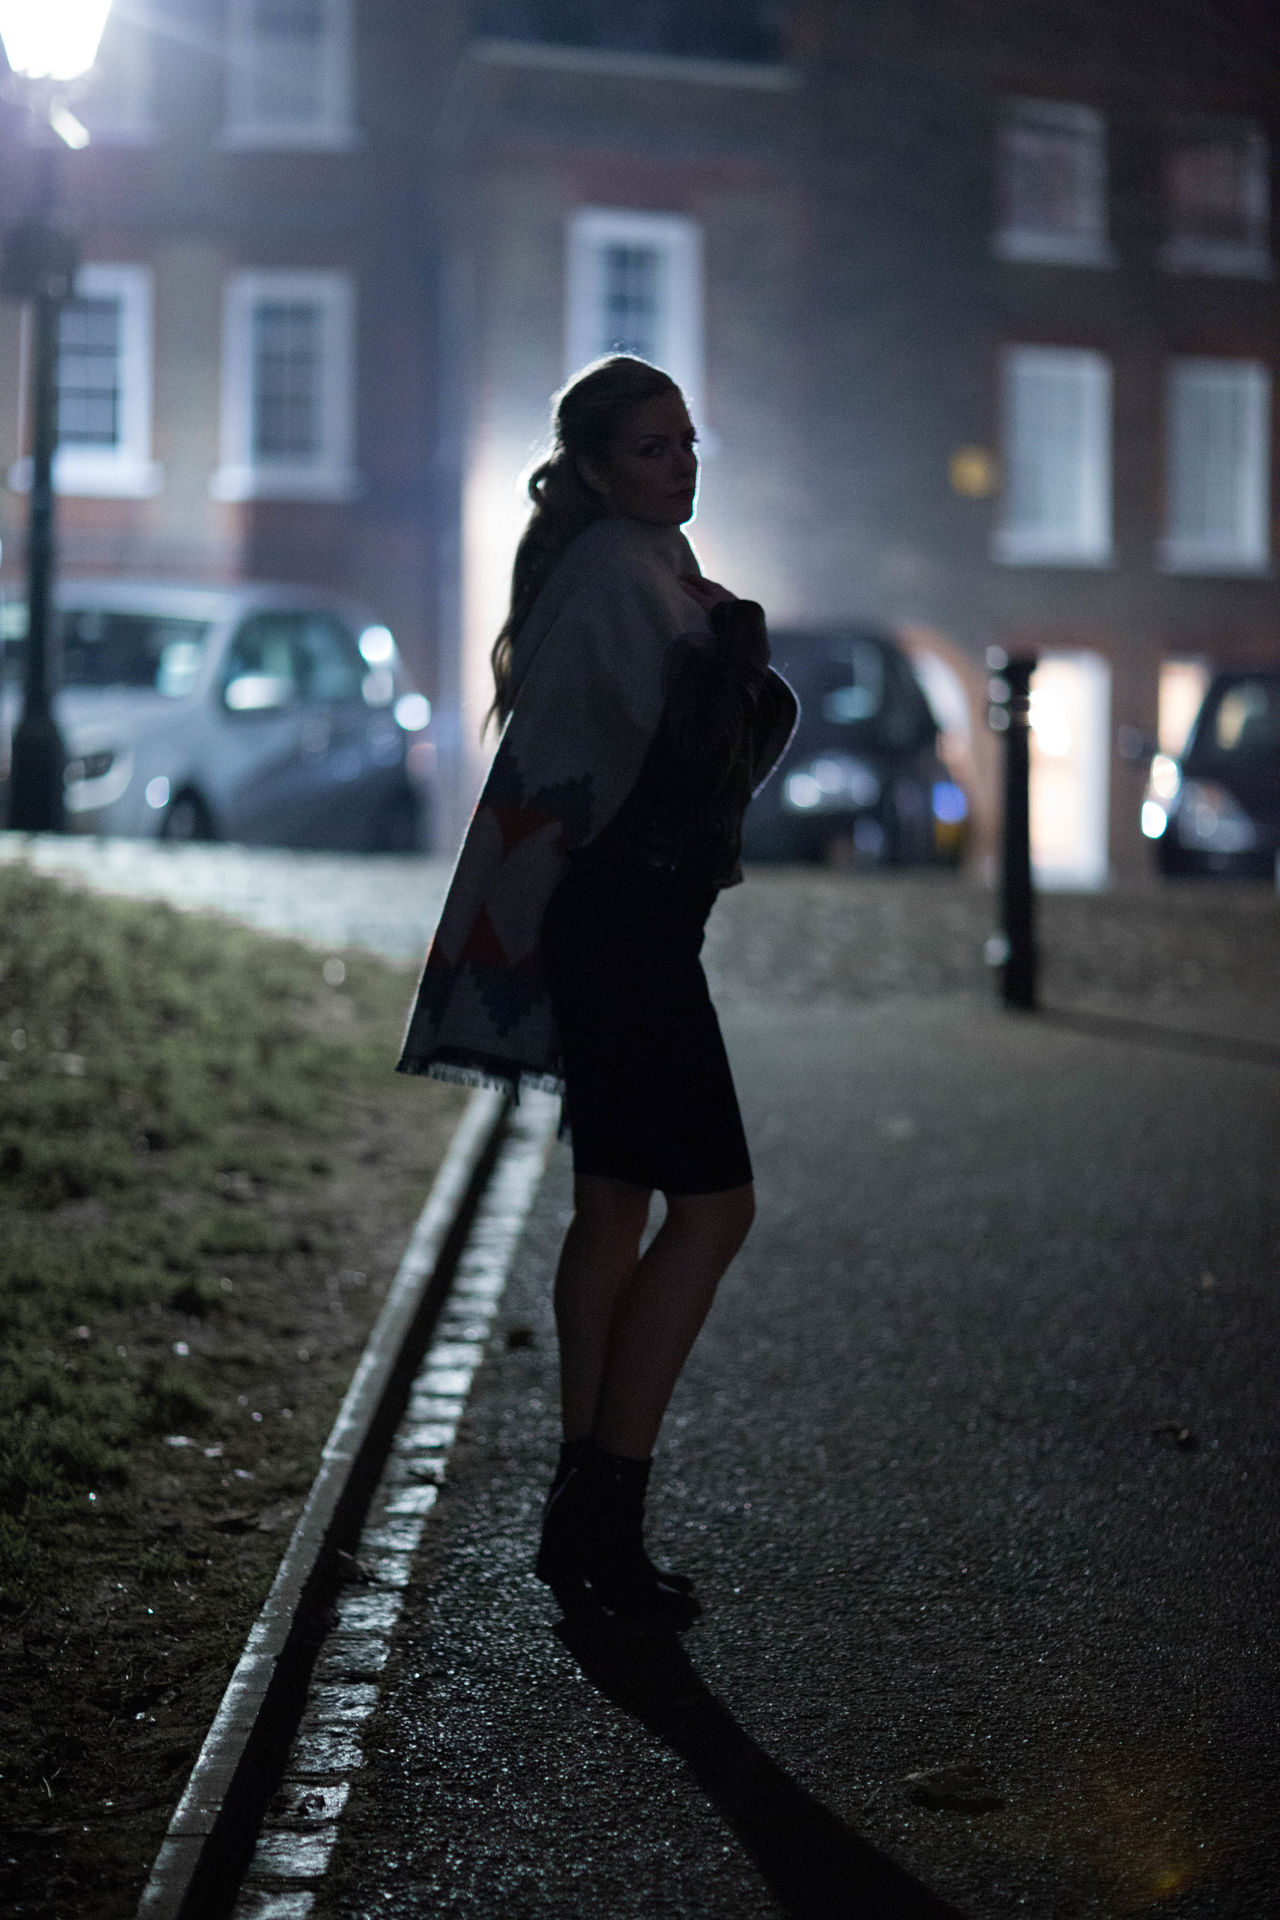 Portfolio One Person Walking Transportation Full Length People Adults Only Journey Outdoors Lifestyles Adult Only Women One Woman Only Silhouette City Building Exterior Real People Night Overcoat Young Adult noelia Nightphotography Street Light City Model Photography Modelshoot